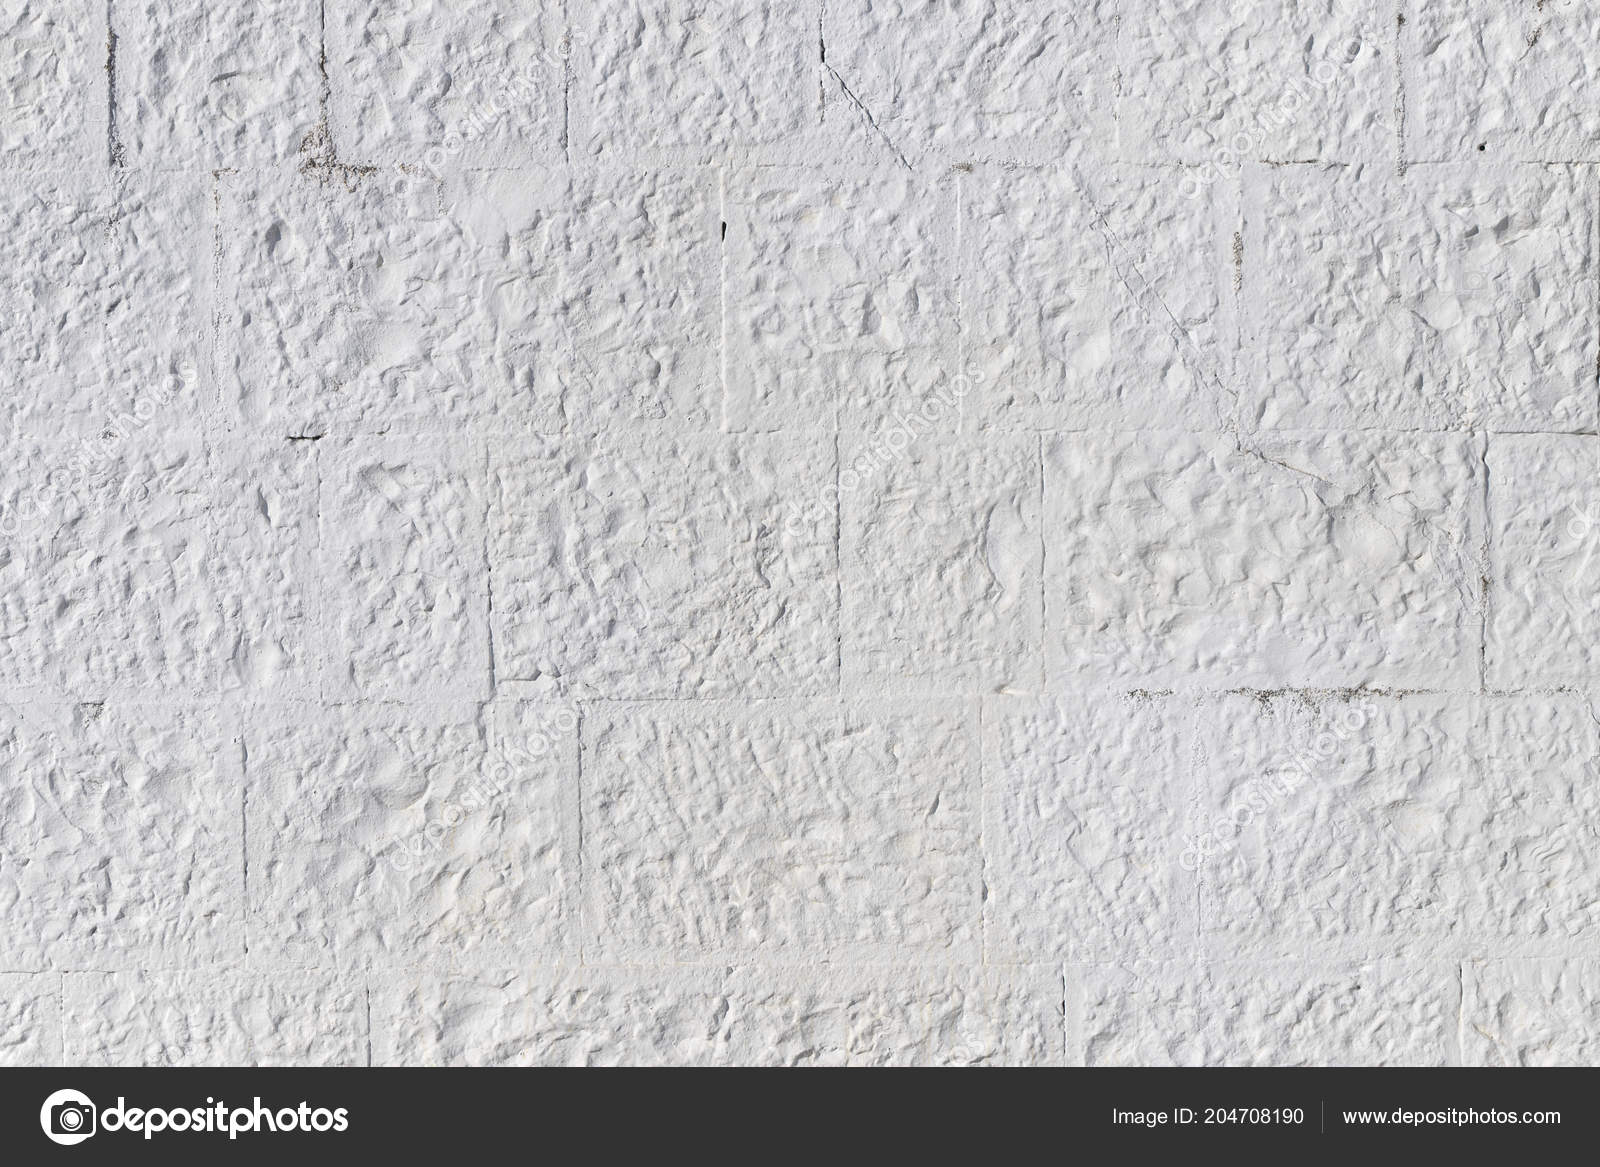 Image of: Pictures Painted Cinder Block Wall White Painted Concrete Block Wall Background Texture Stock Photo C Shellexx 204708190